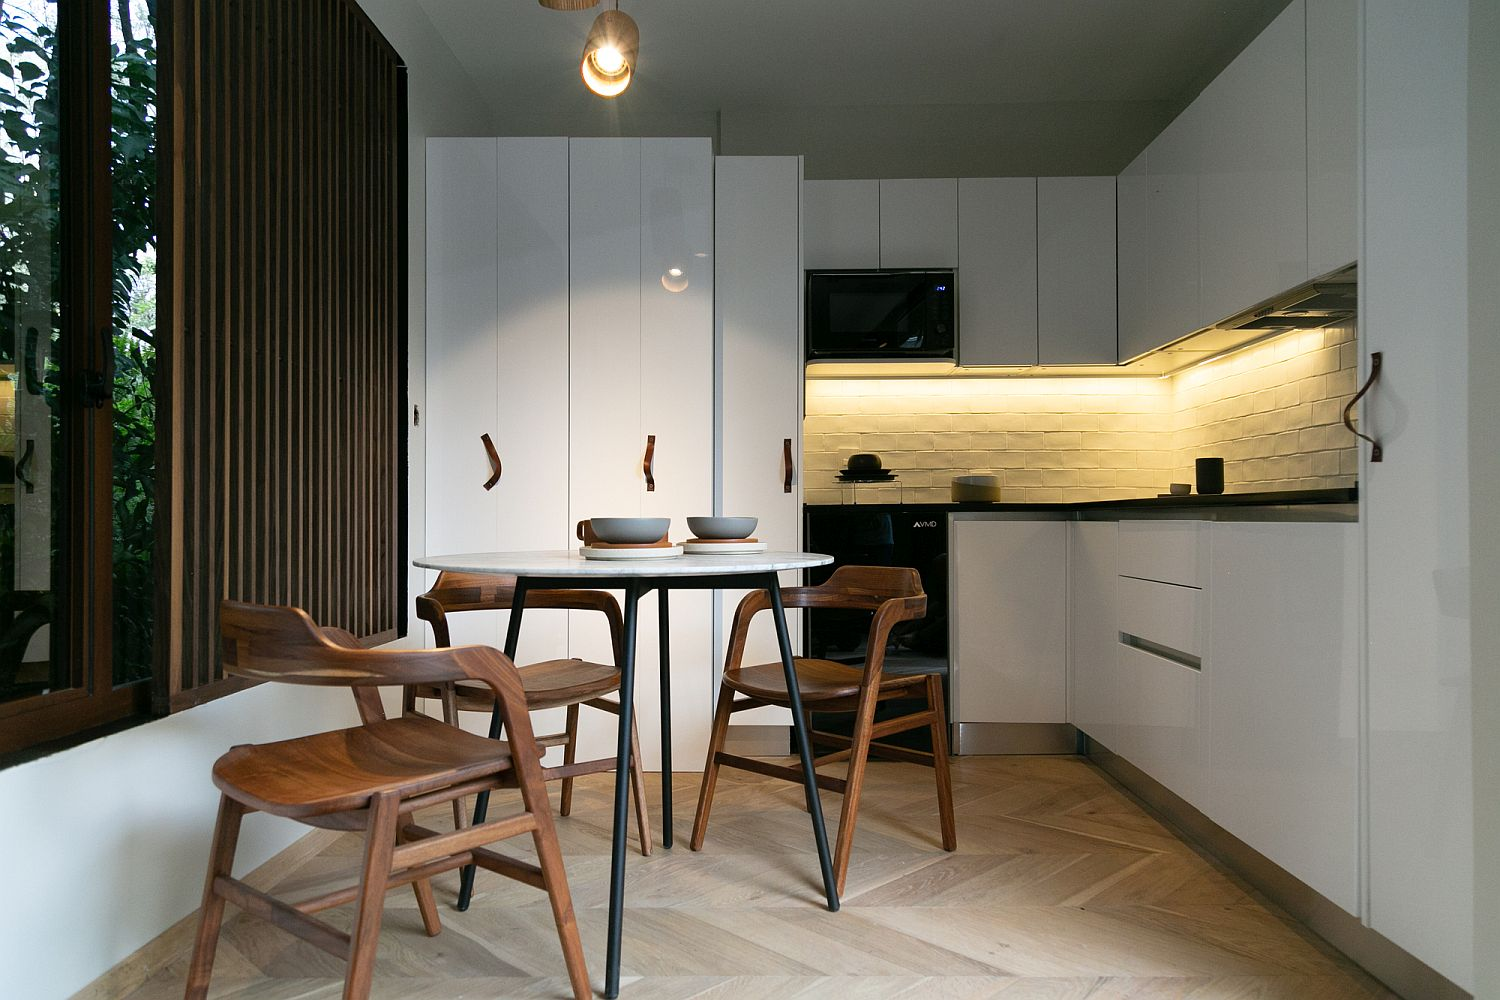 Efficient and minimal design inside the home cuts back on wastage of resources